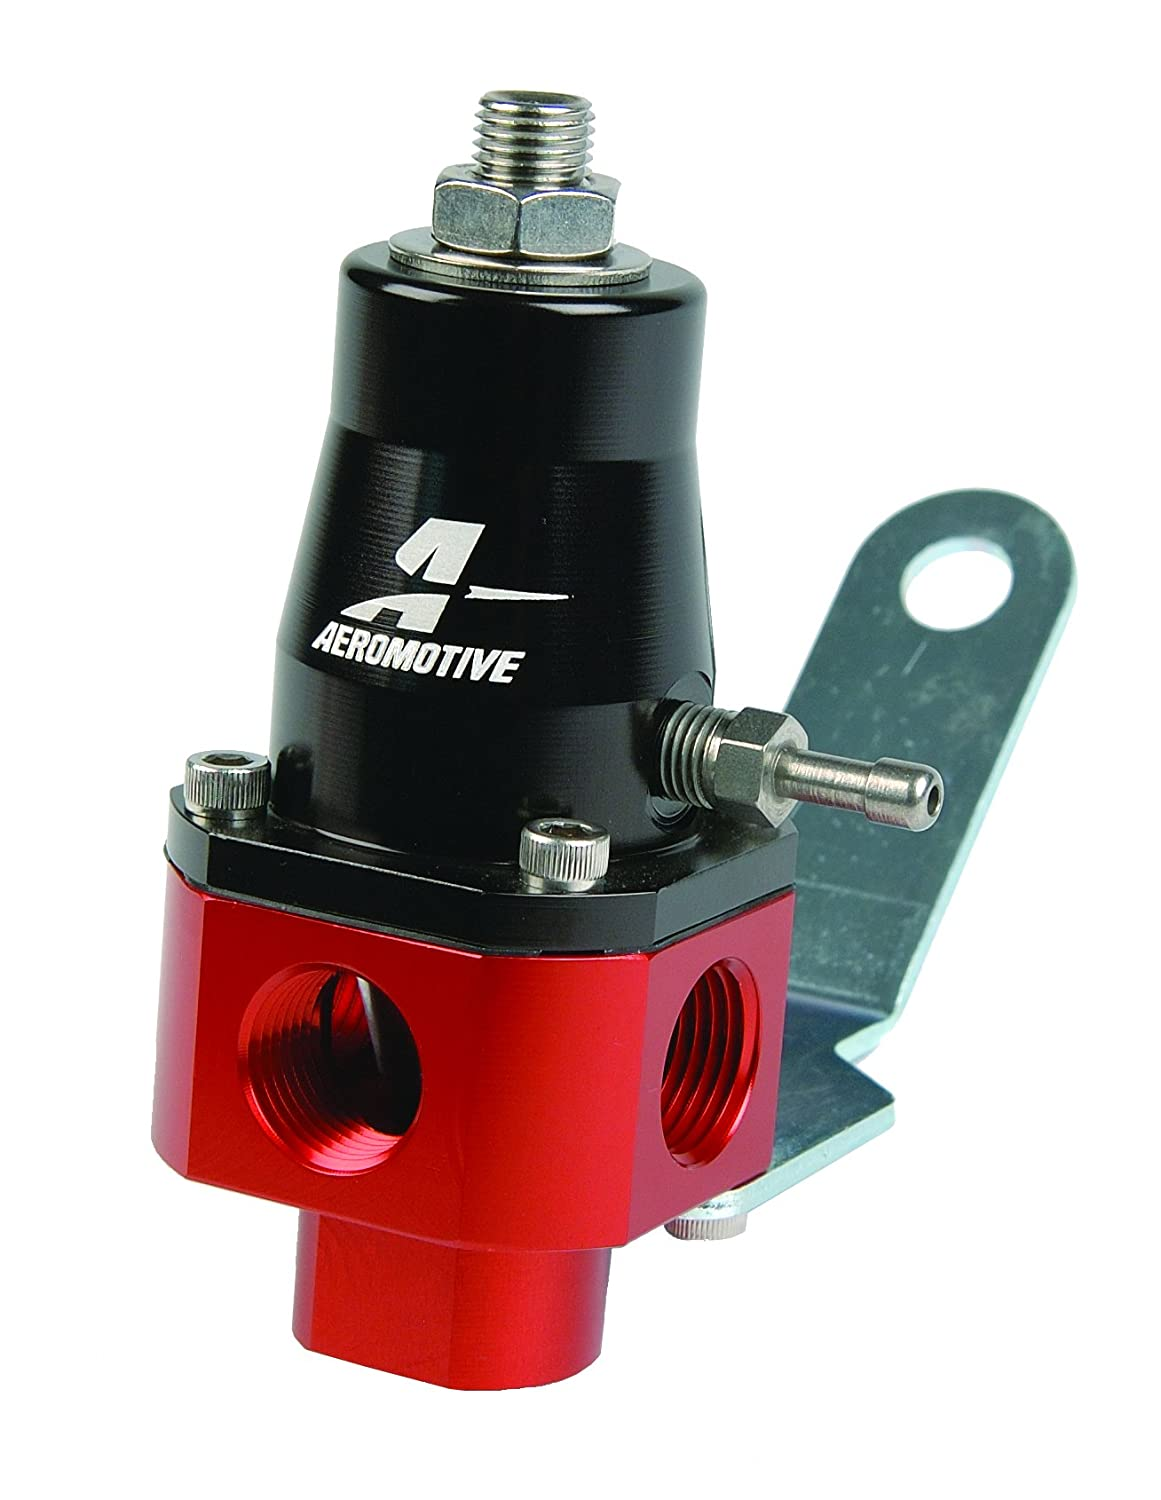 Aeromotive 13301 Universal Bypass Fuel Regulator